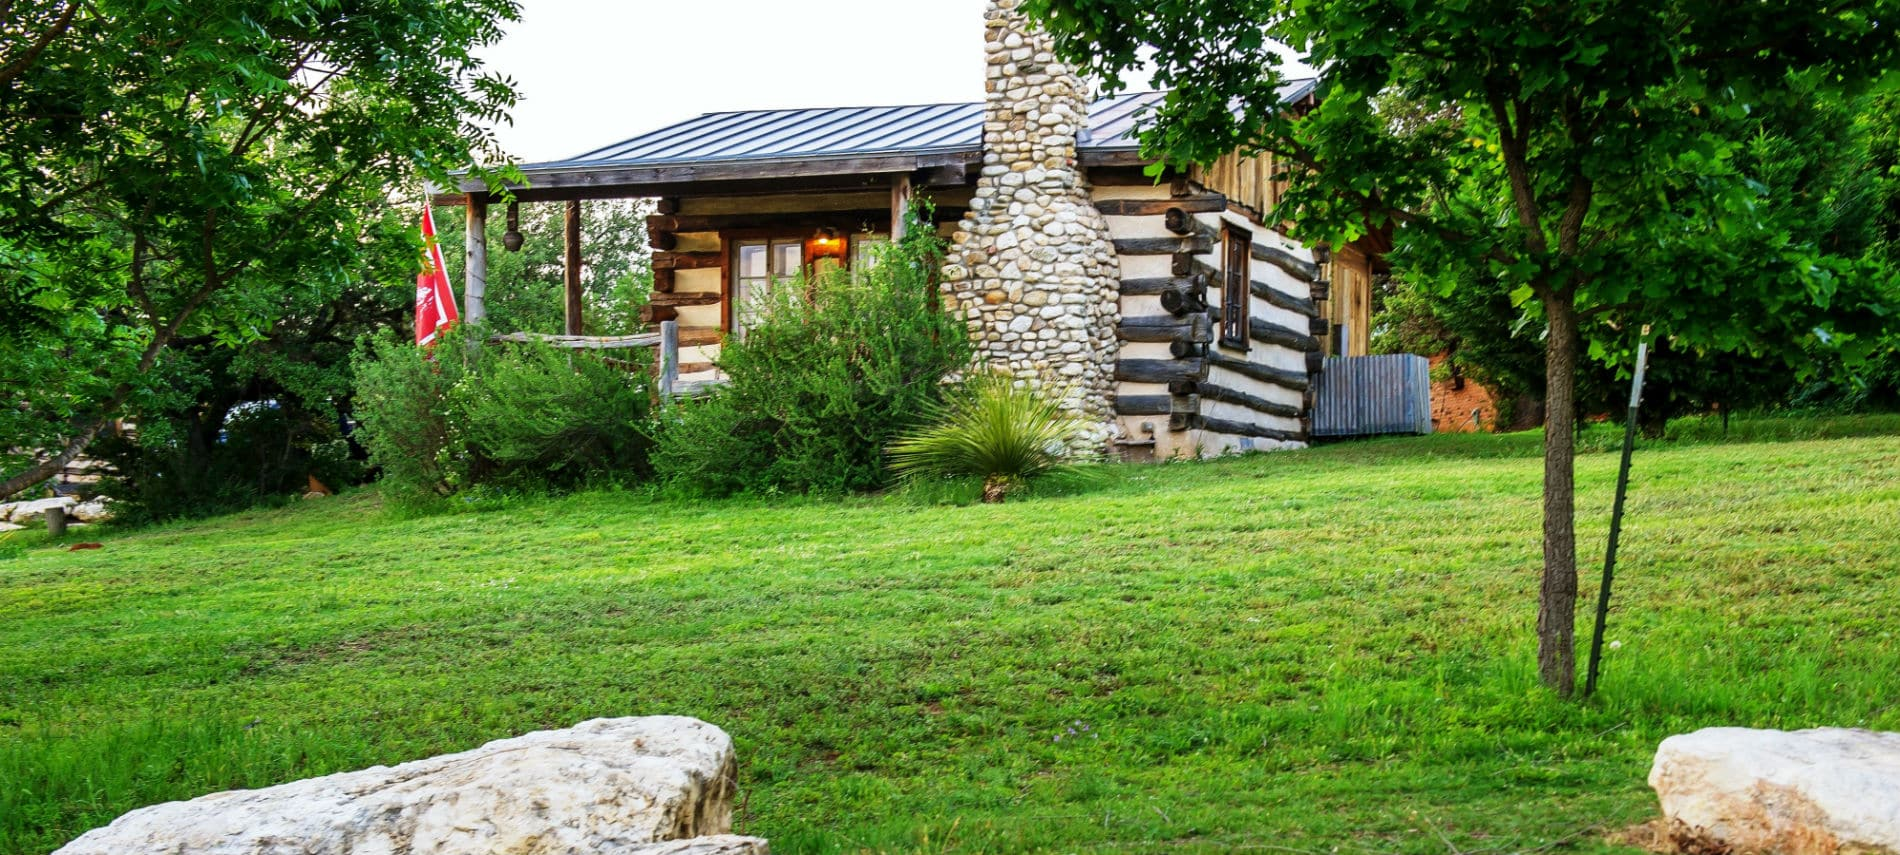 mendelbaum cabin breakfasts tx peach and cabins bed fredericksburg winery guesthouses guest